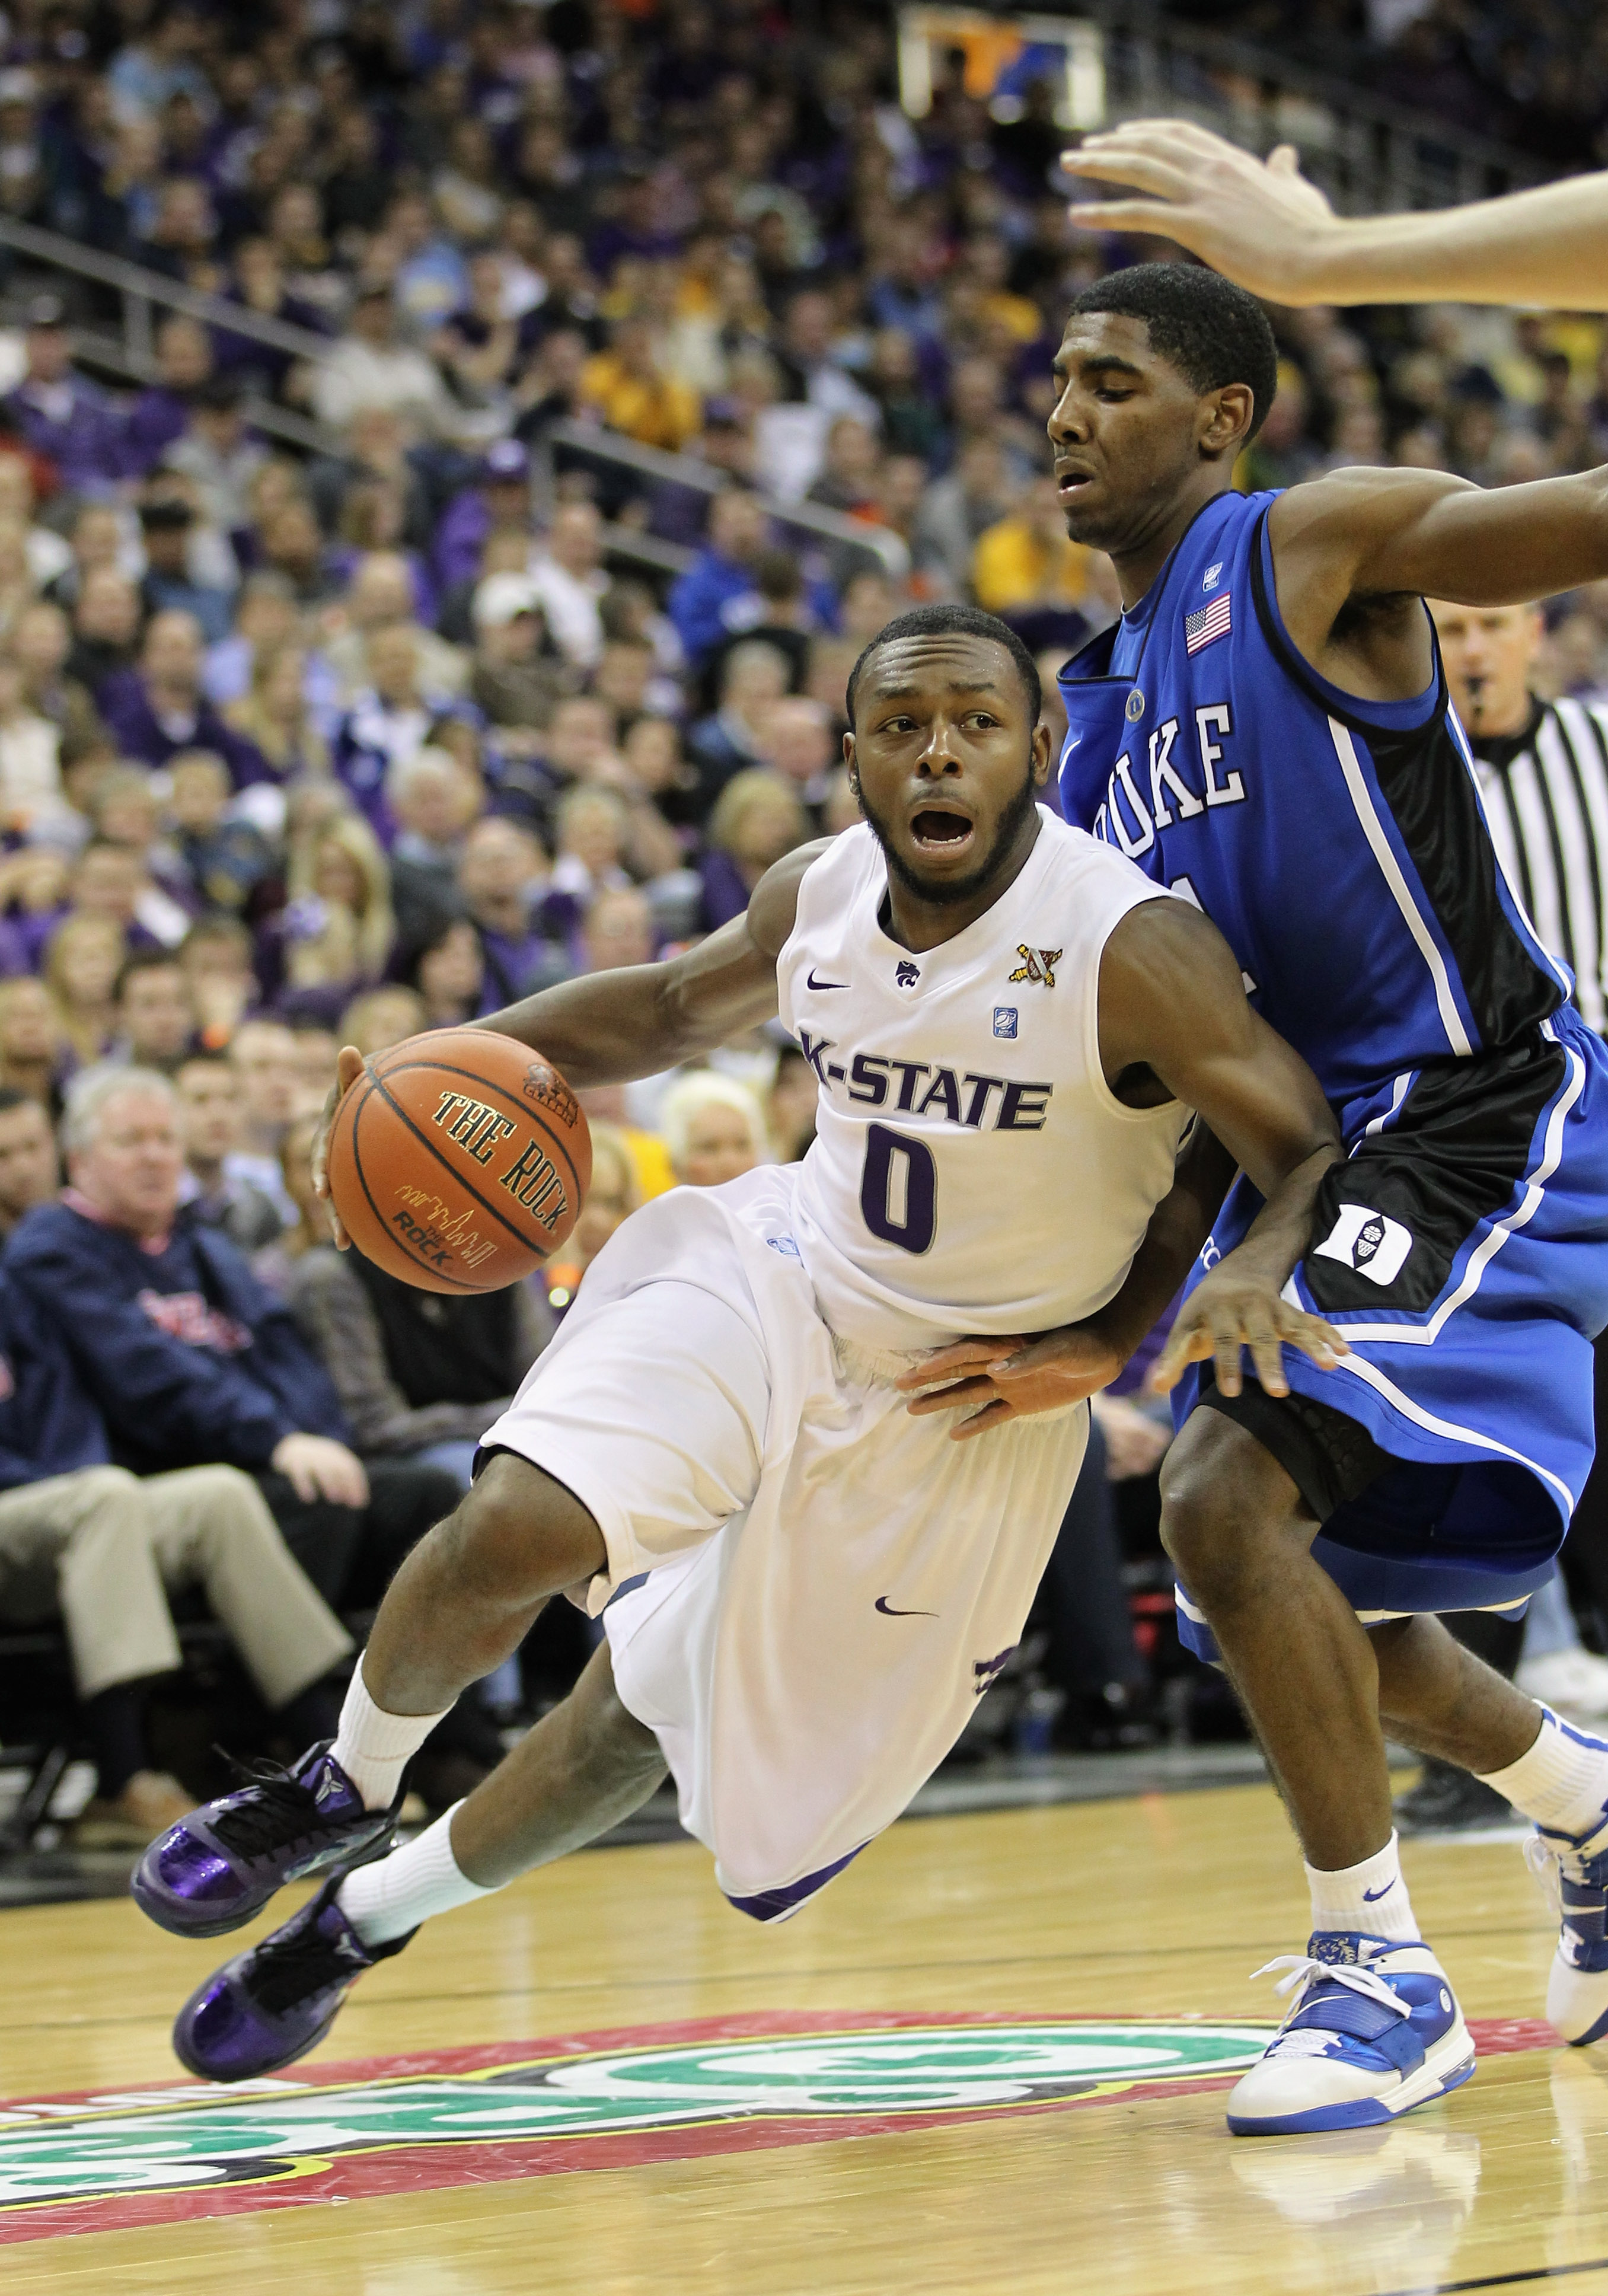 KANSAS CITY, MO - NOVEMBER 23:  Jacob Pullen #0 of the Kansas State Wildcats drives as Kyrie Irving #1 of the Duke Blue Devils defends during the CBE Classic championship game on November 23, 2010 at the Sprint Center in Kansas City, Missouri.  (Photo by